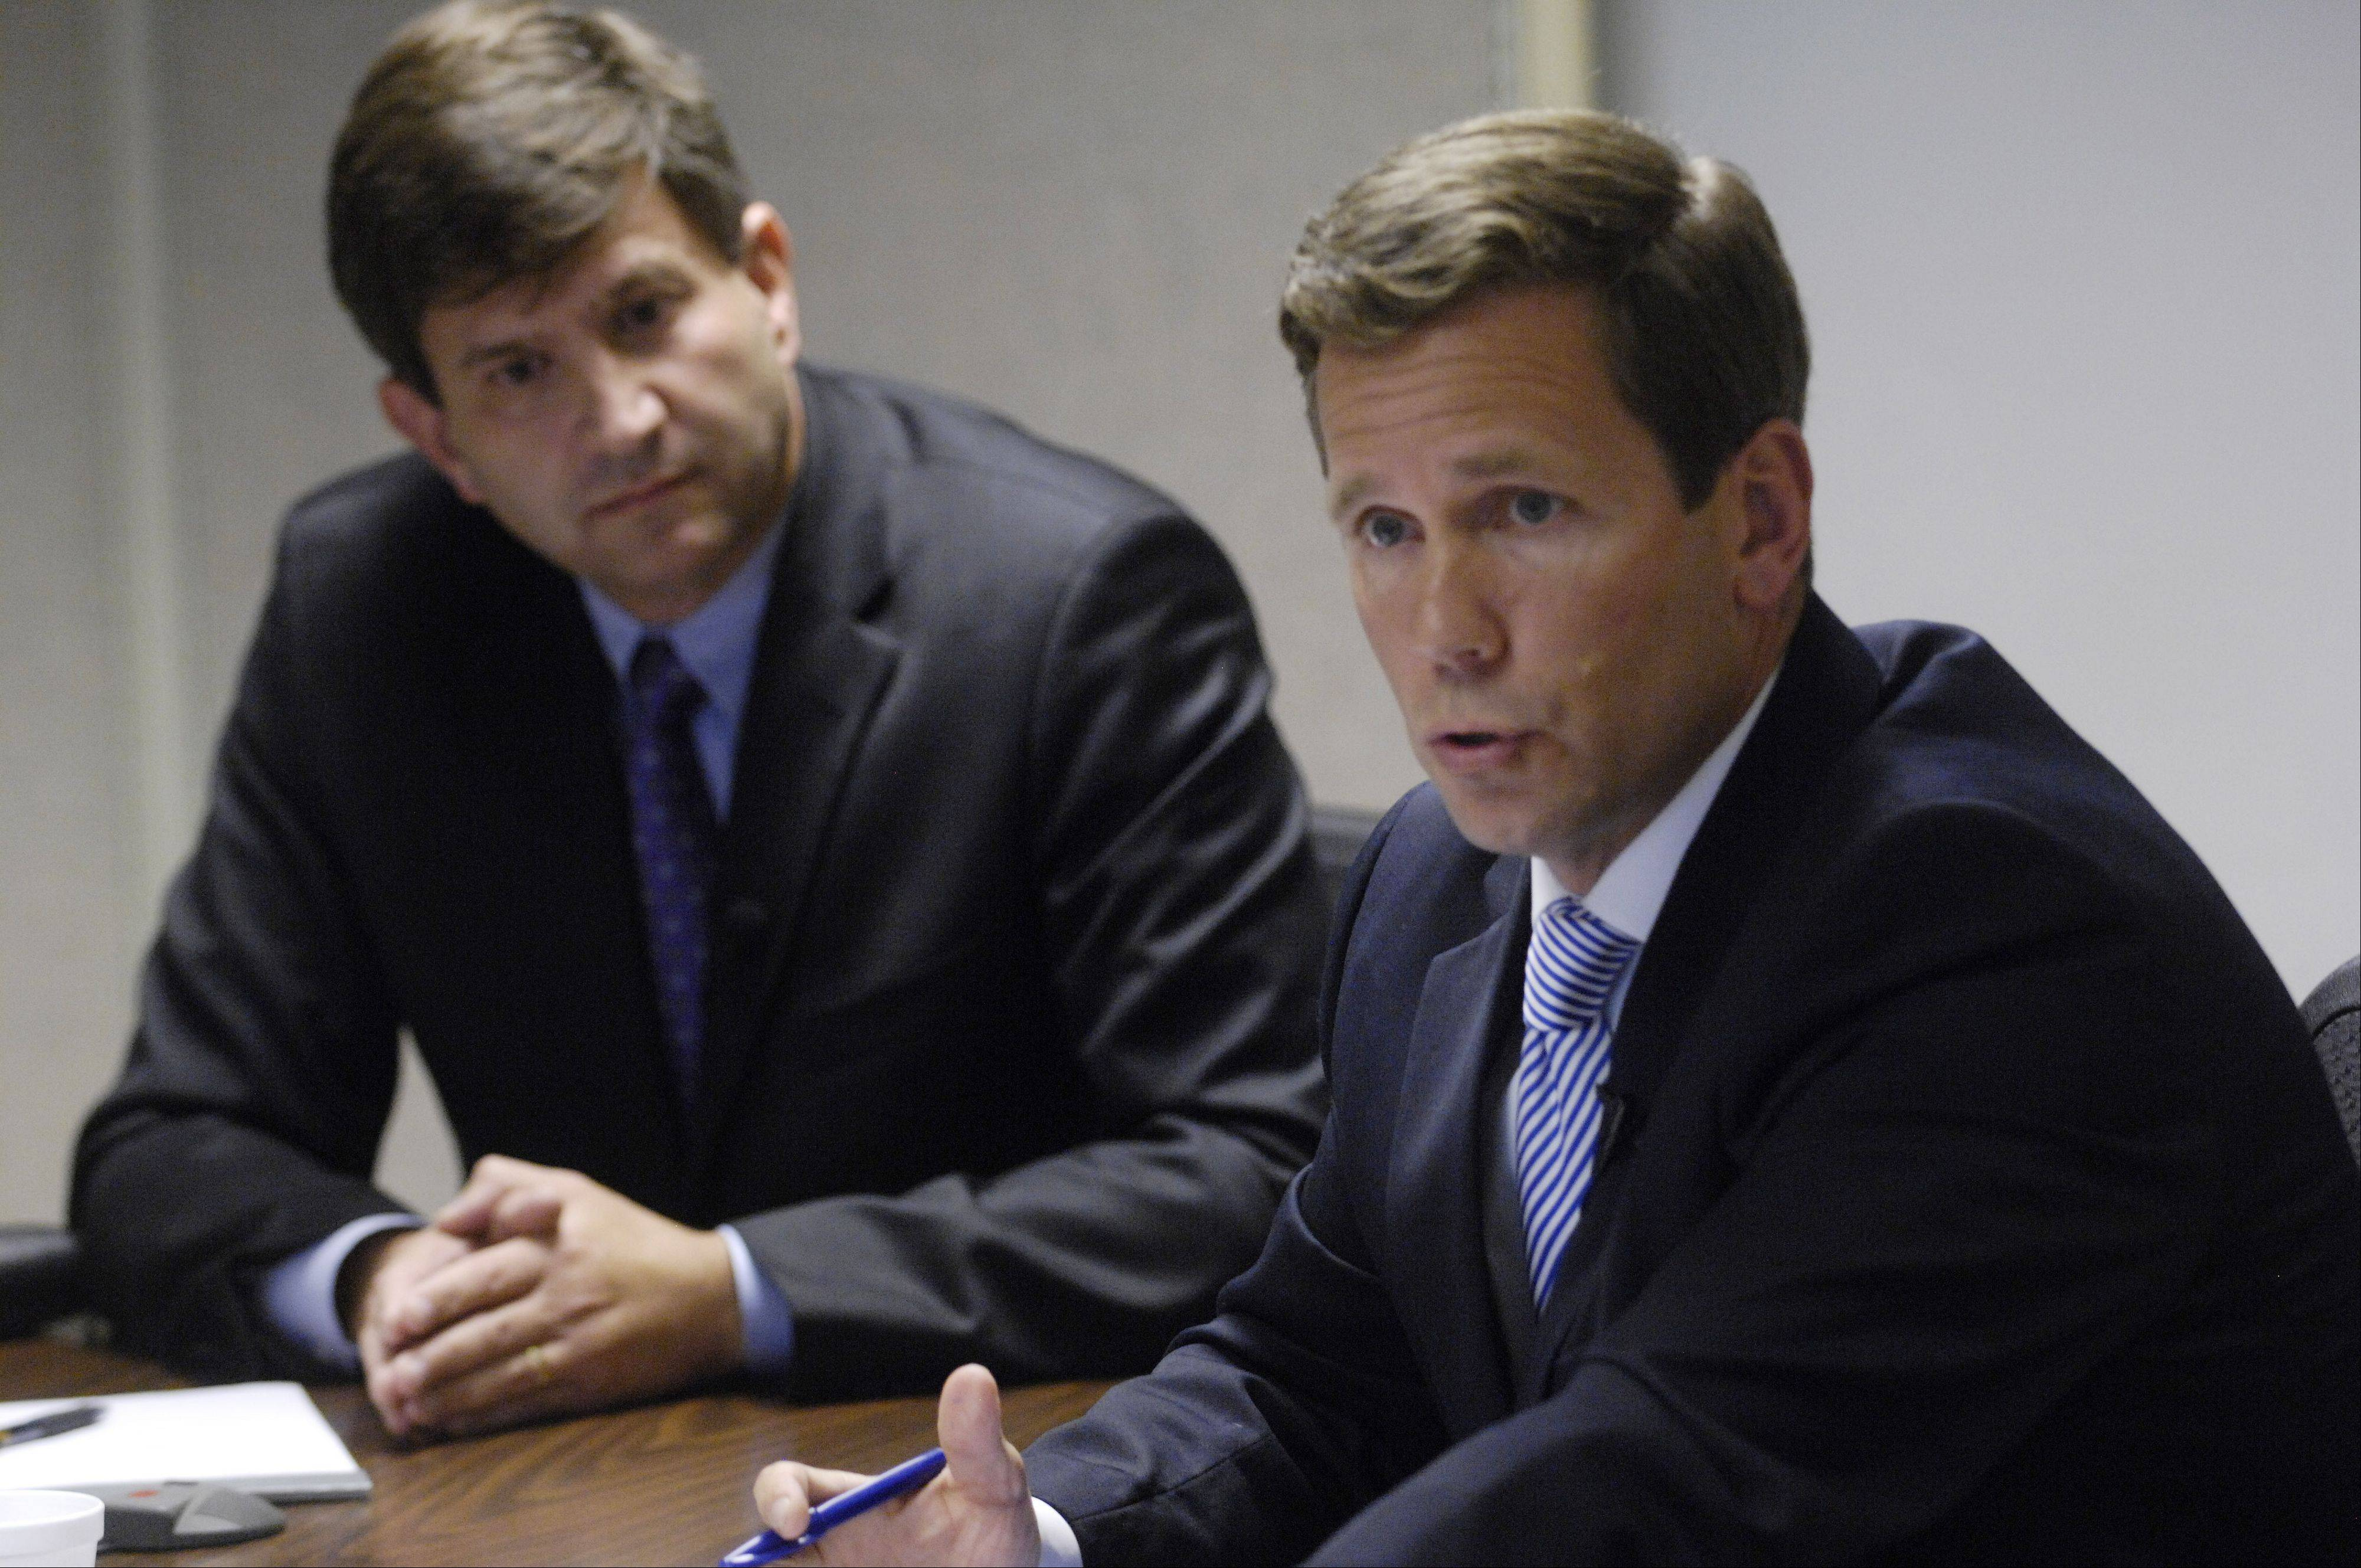 Dold whacks at Schneider over job experience; Schneider hits back on abortion votes